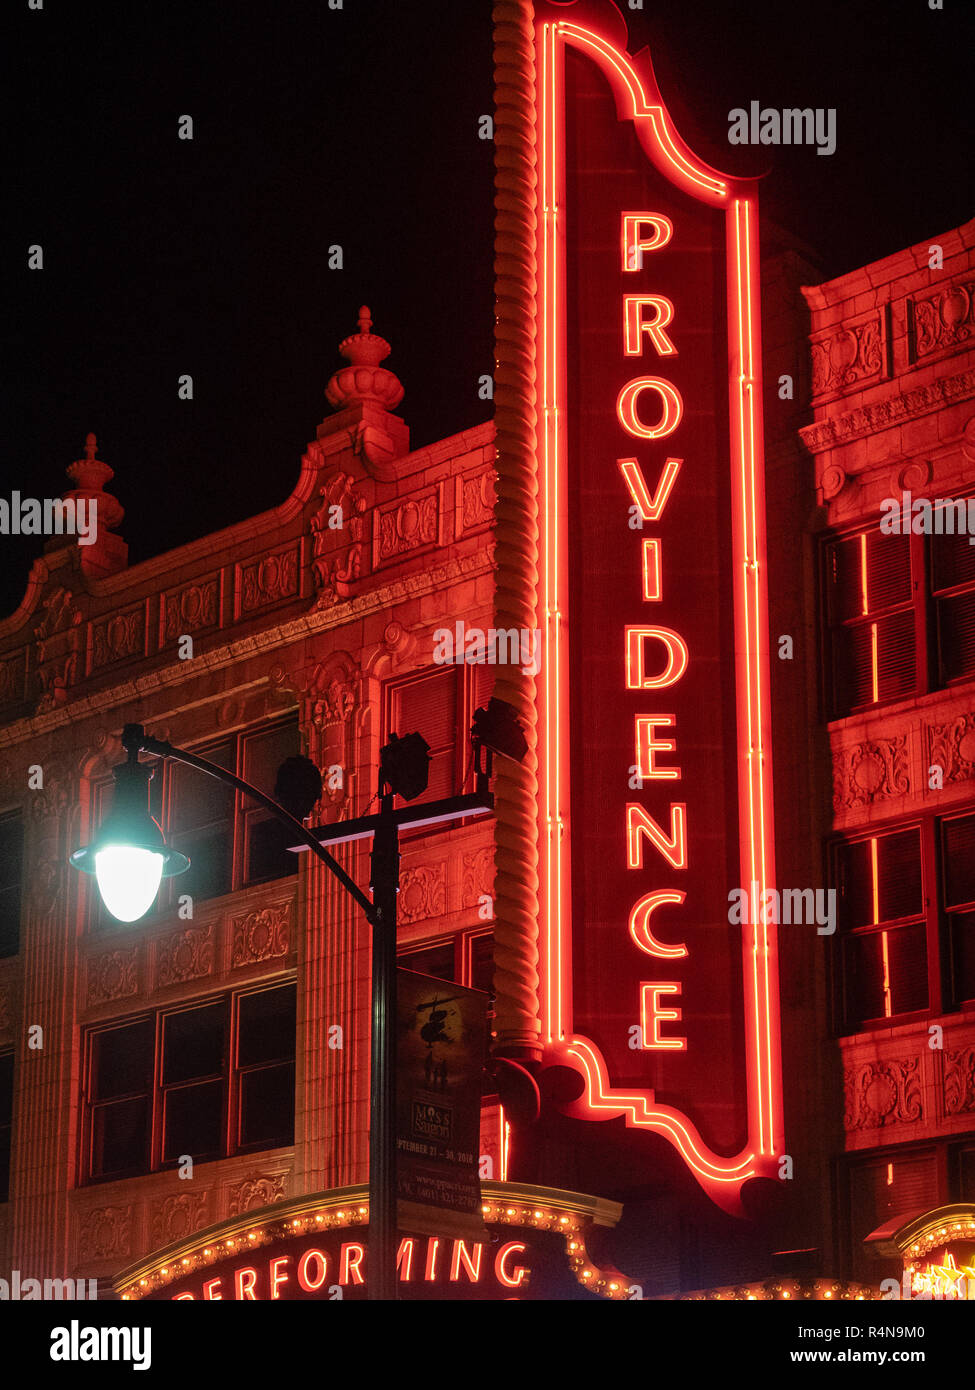 Providence Performing Art Center, Providence, Rhode Island, USA - Stock Image